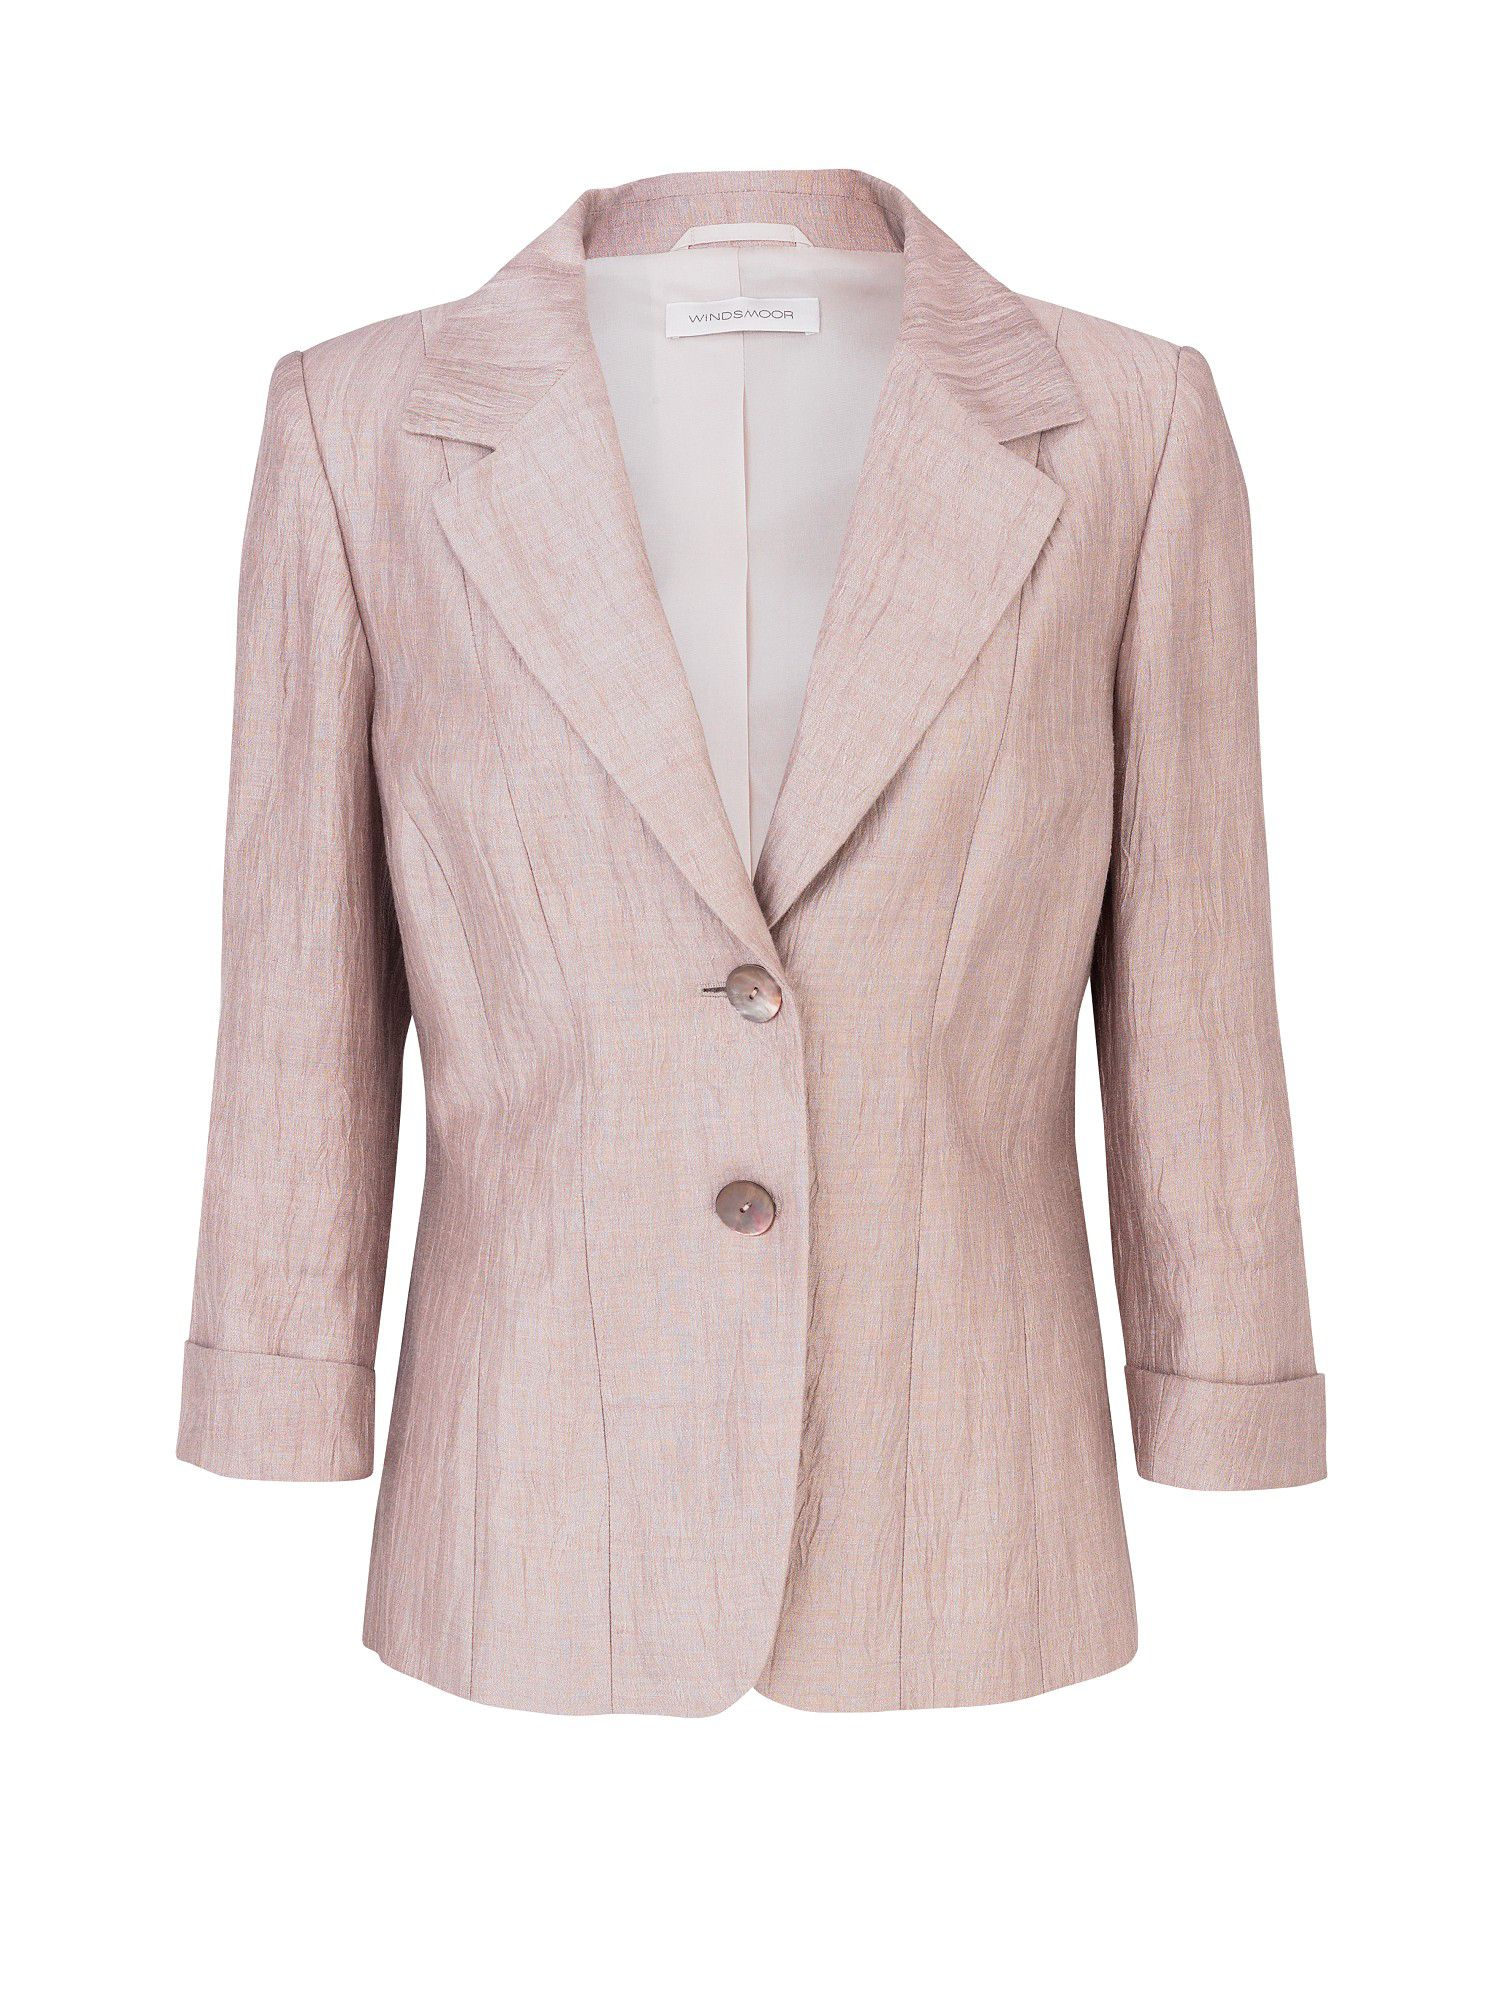 Blush crinkle jacket